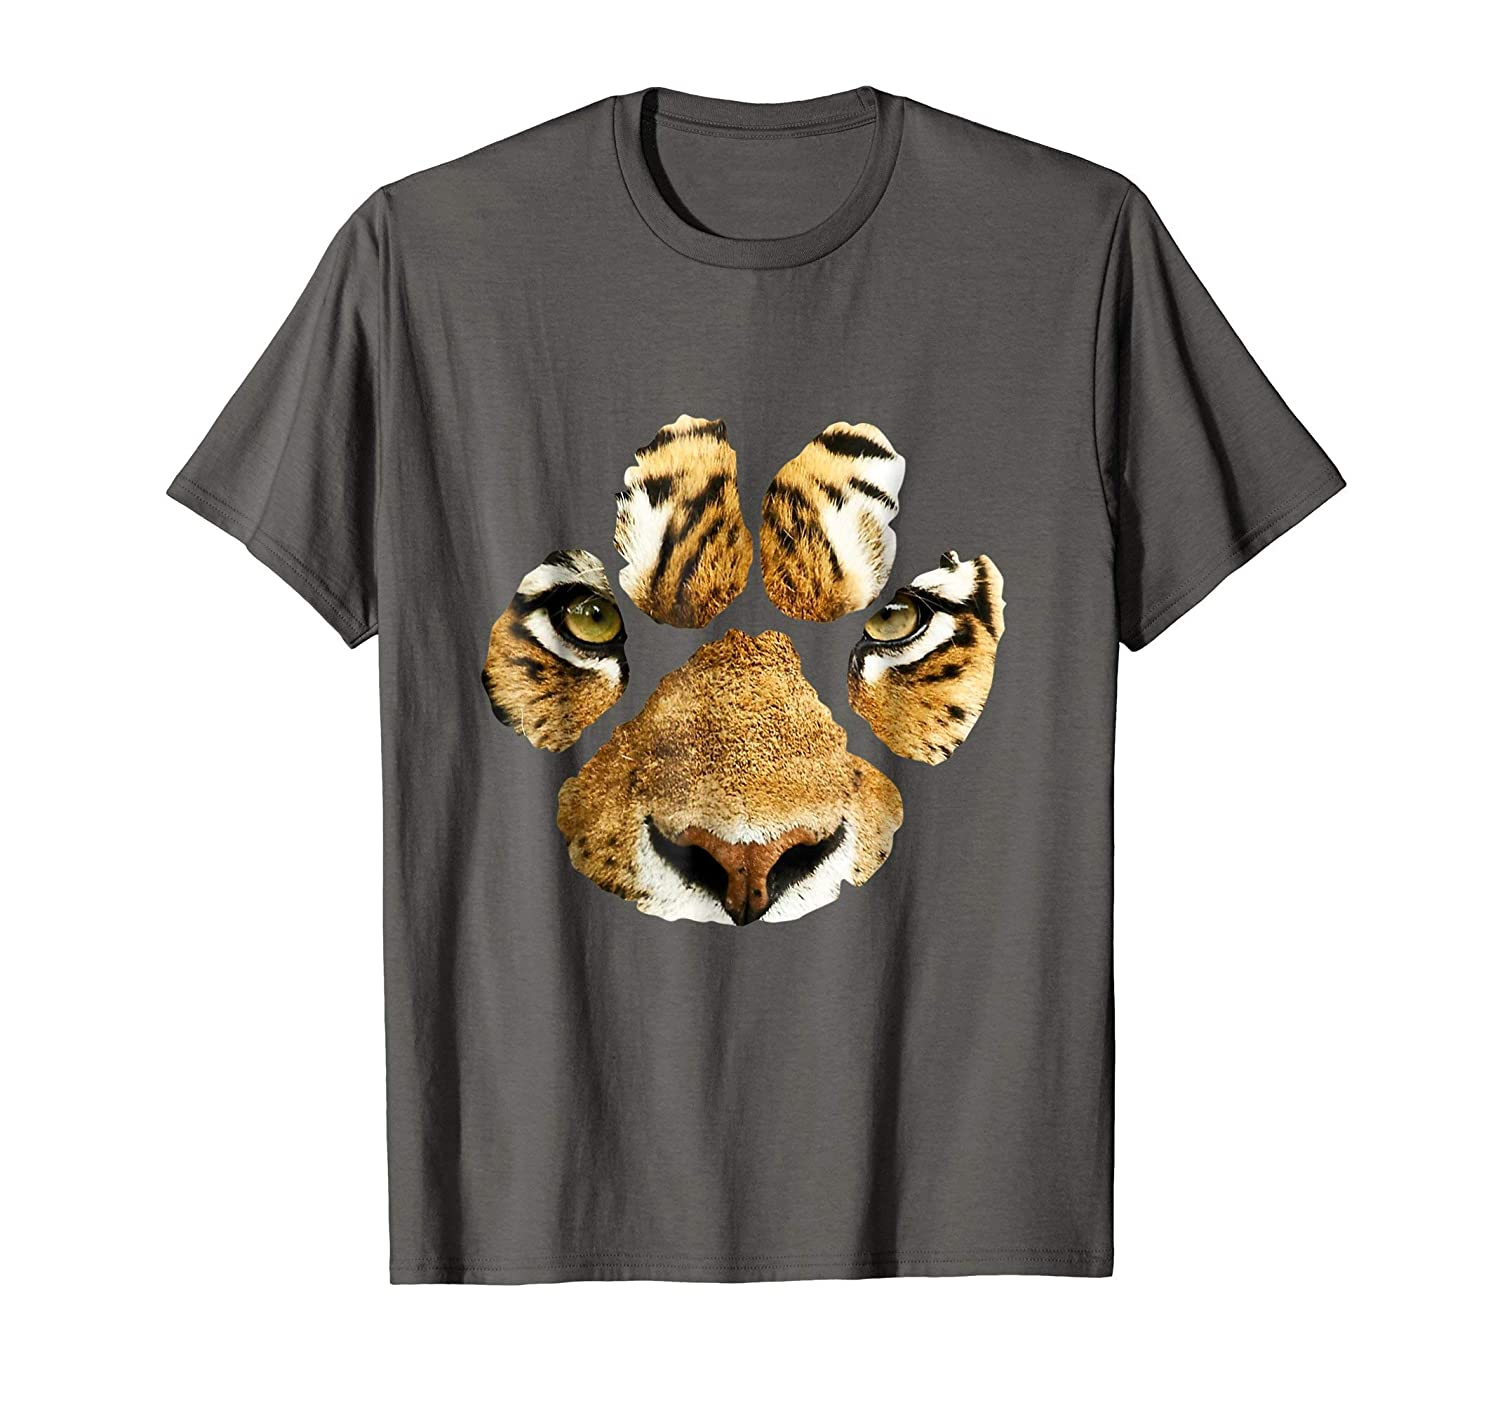 28624a66b Imported Machine wash cold with like colors, dry low heat. Tiger paw shirt  design. Perfect shirt for tiger and big cat lovers. Gorgeous tiger face tee.